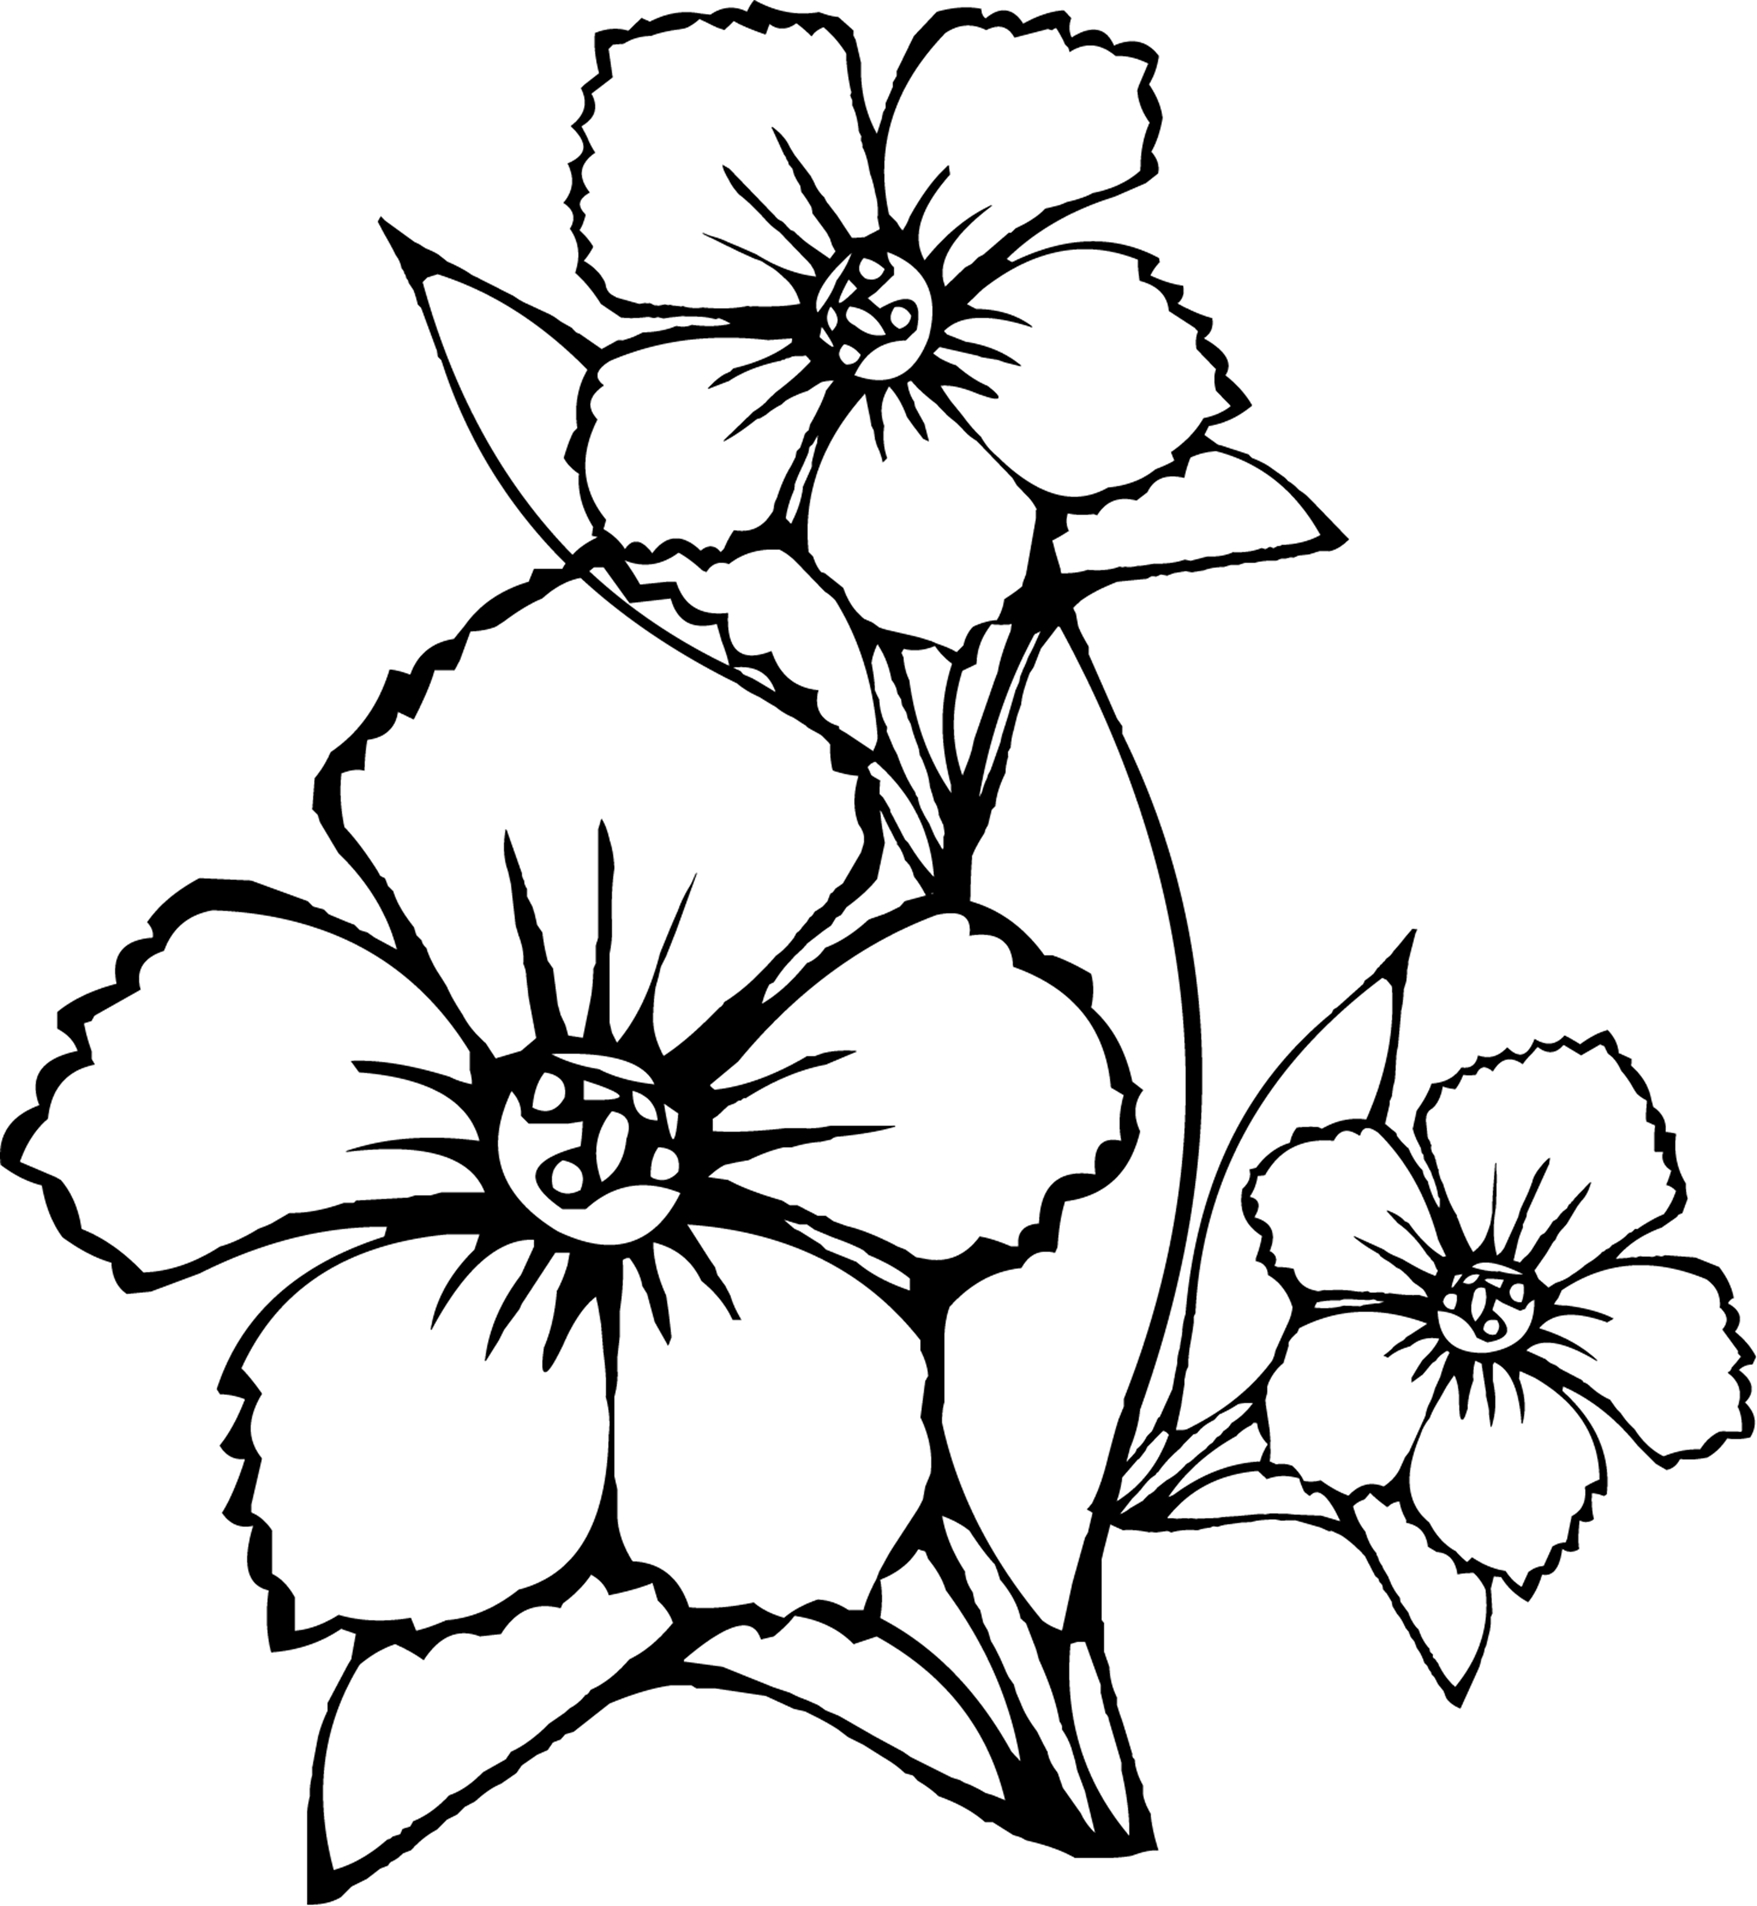 colouring flowers free printable flower coloring pages for kids cool2bkids flowers colouring